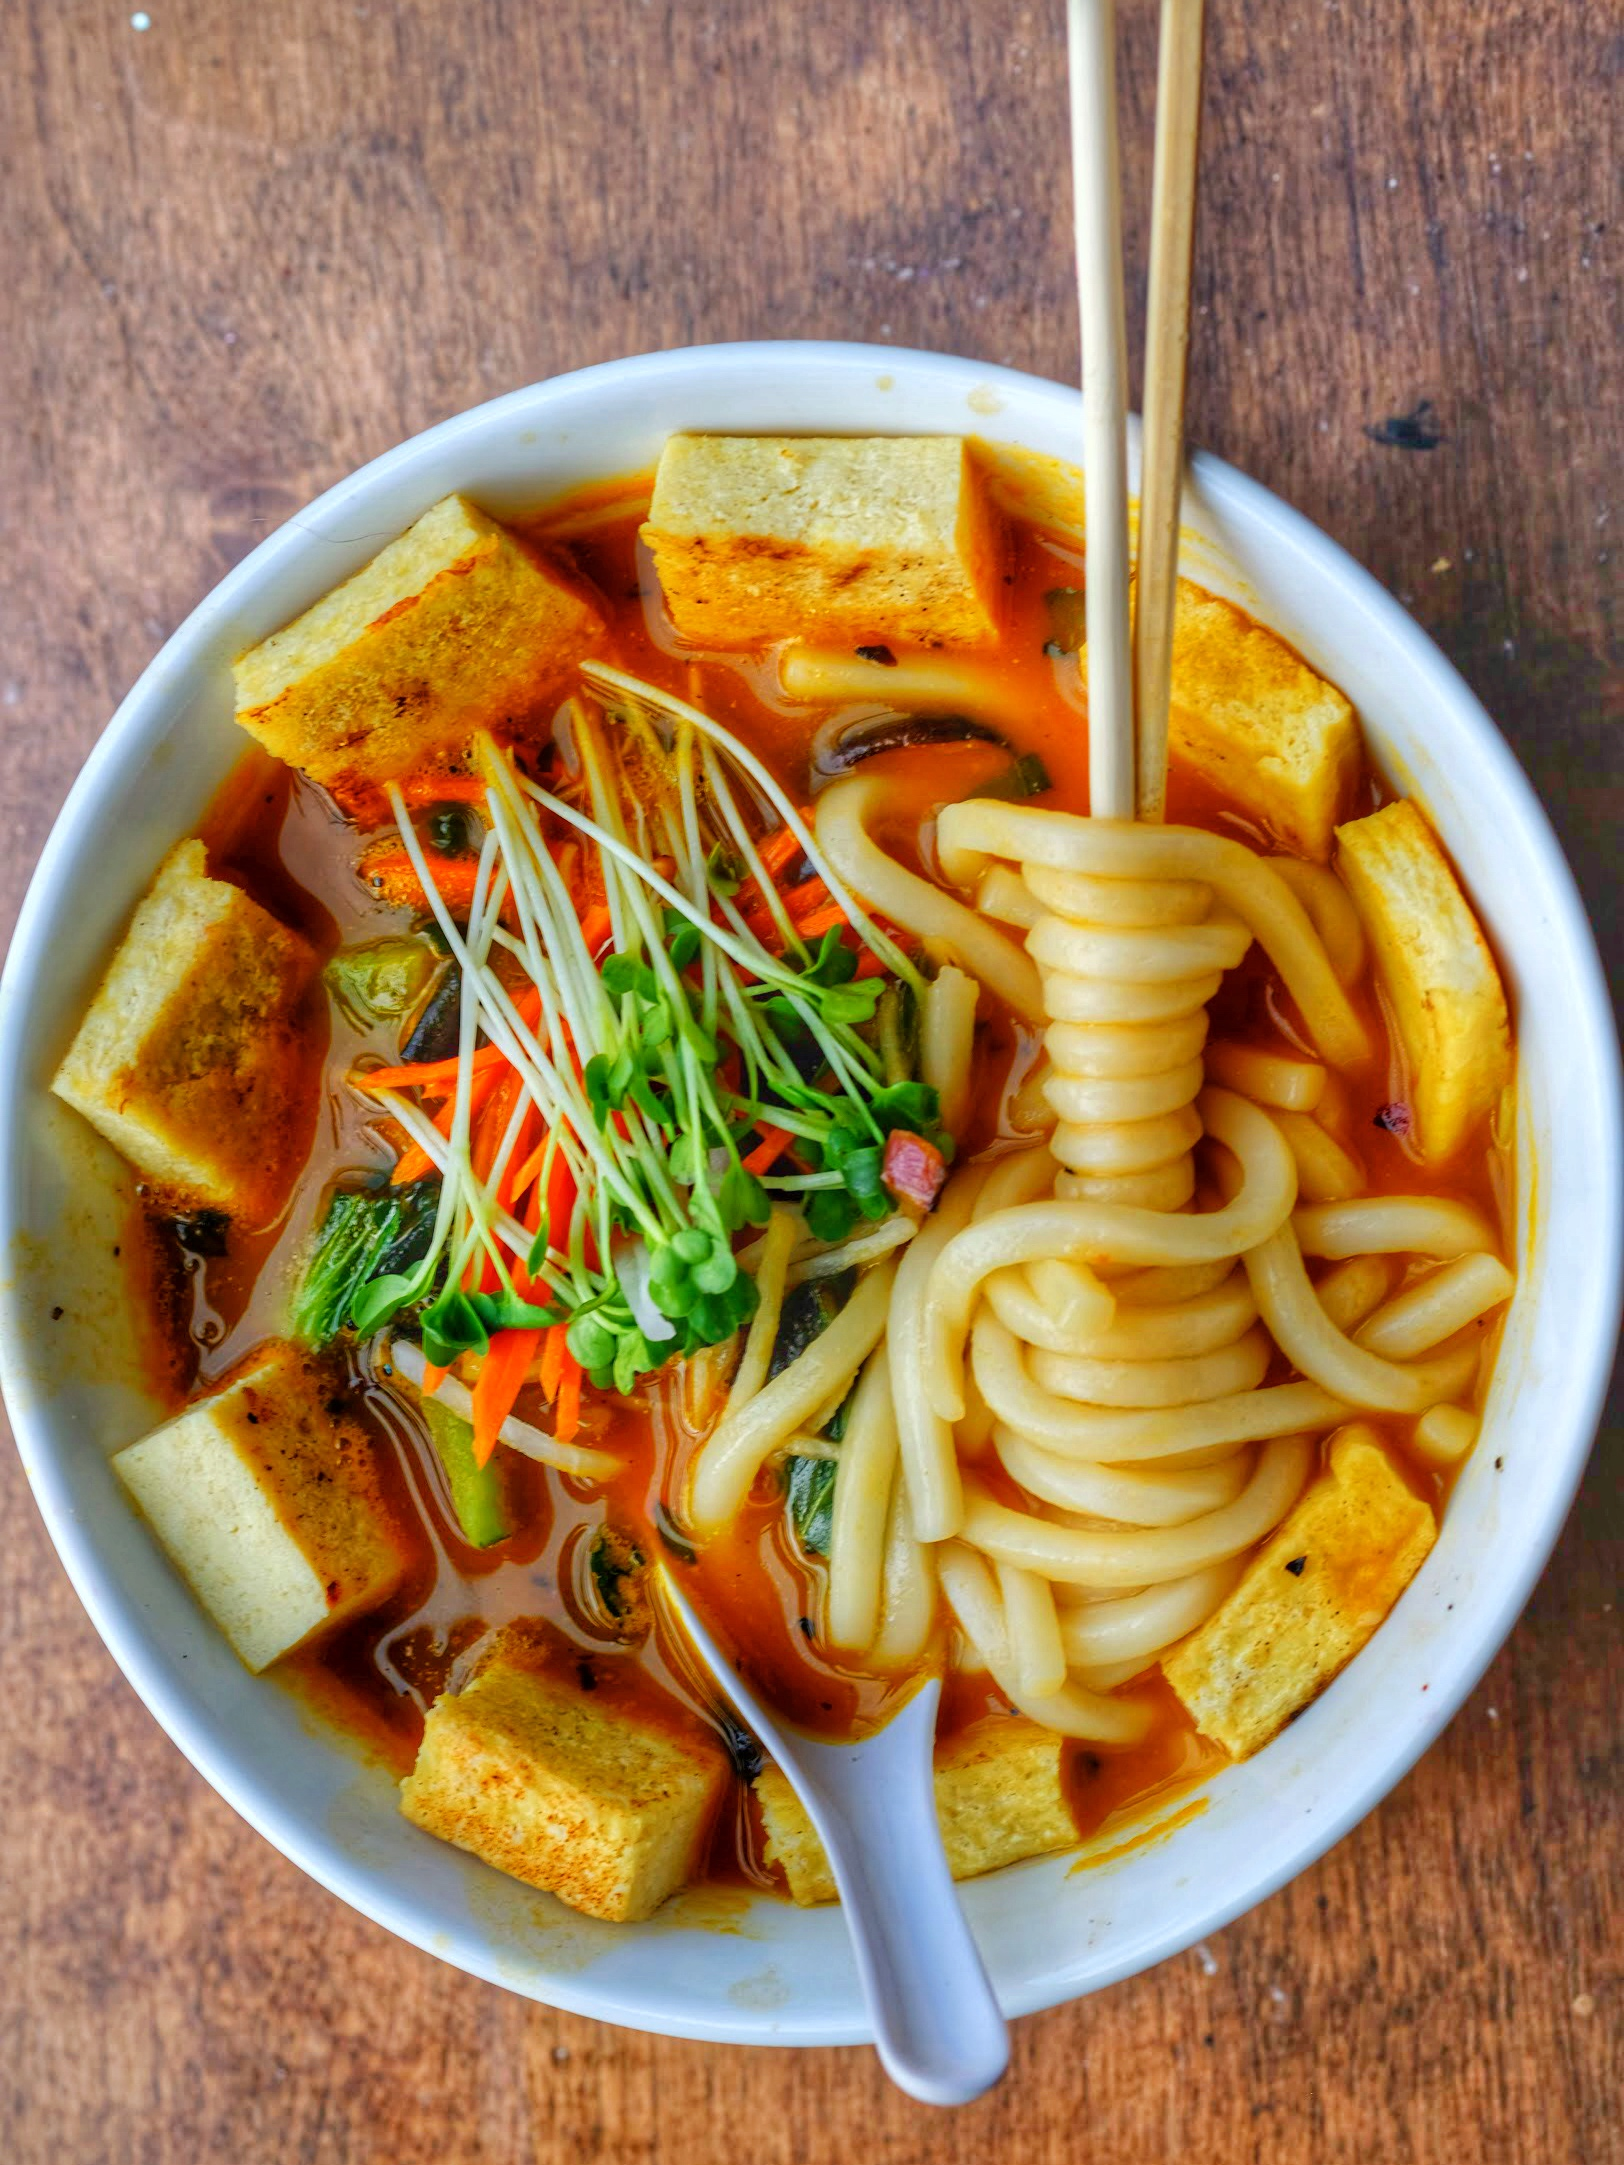 mushrooms, bok choy, fennel, shallot, jalapenos, thai basil and fresh noodles in a carrot ginger broth with daikon, pickeld carrot, sprouts